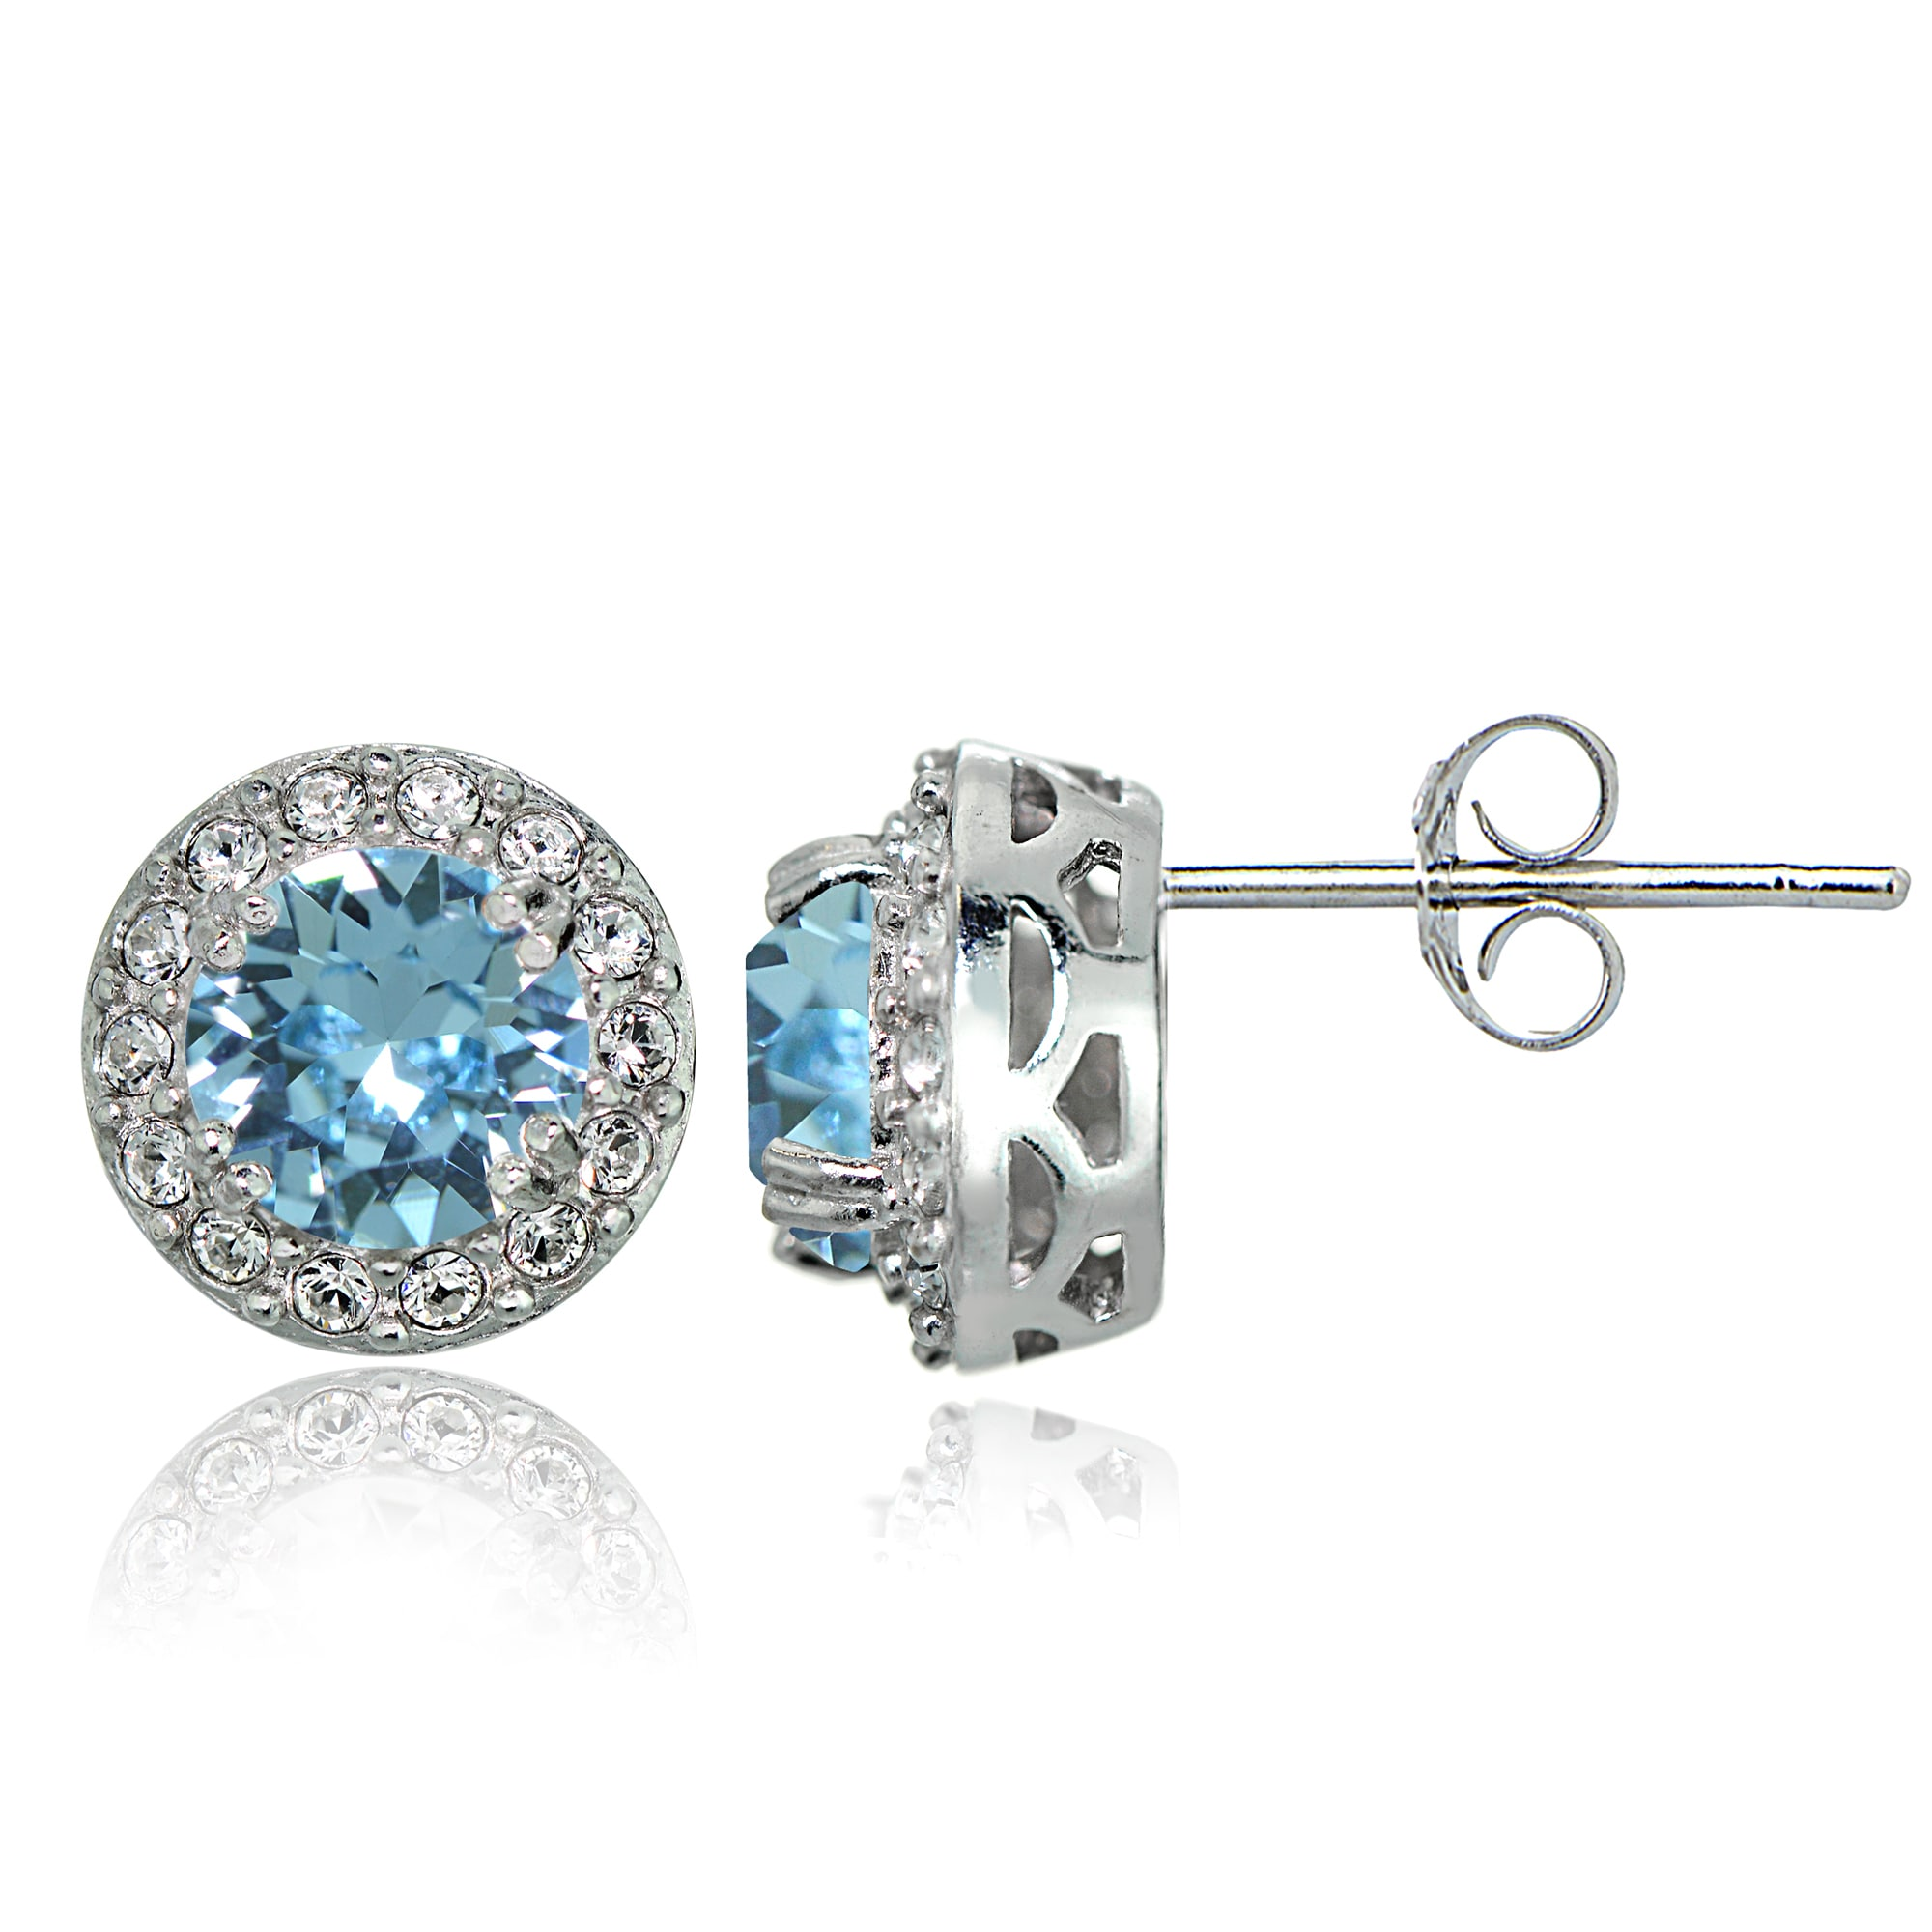 1a9a75777027a6 Shop Crystal Ice Sterling Silver Swarovski Elements Birthstone Halo Stud  Earrings - On Sale - Free Shipping On Orders Over  45 - Overstock - 12113384